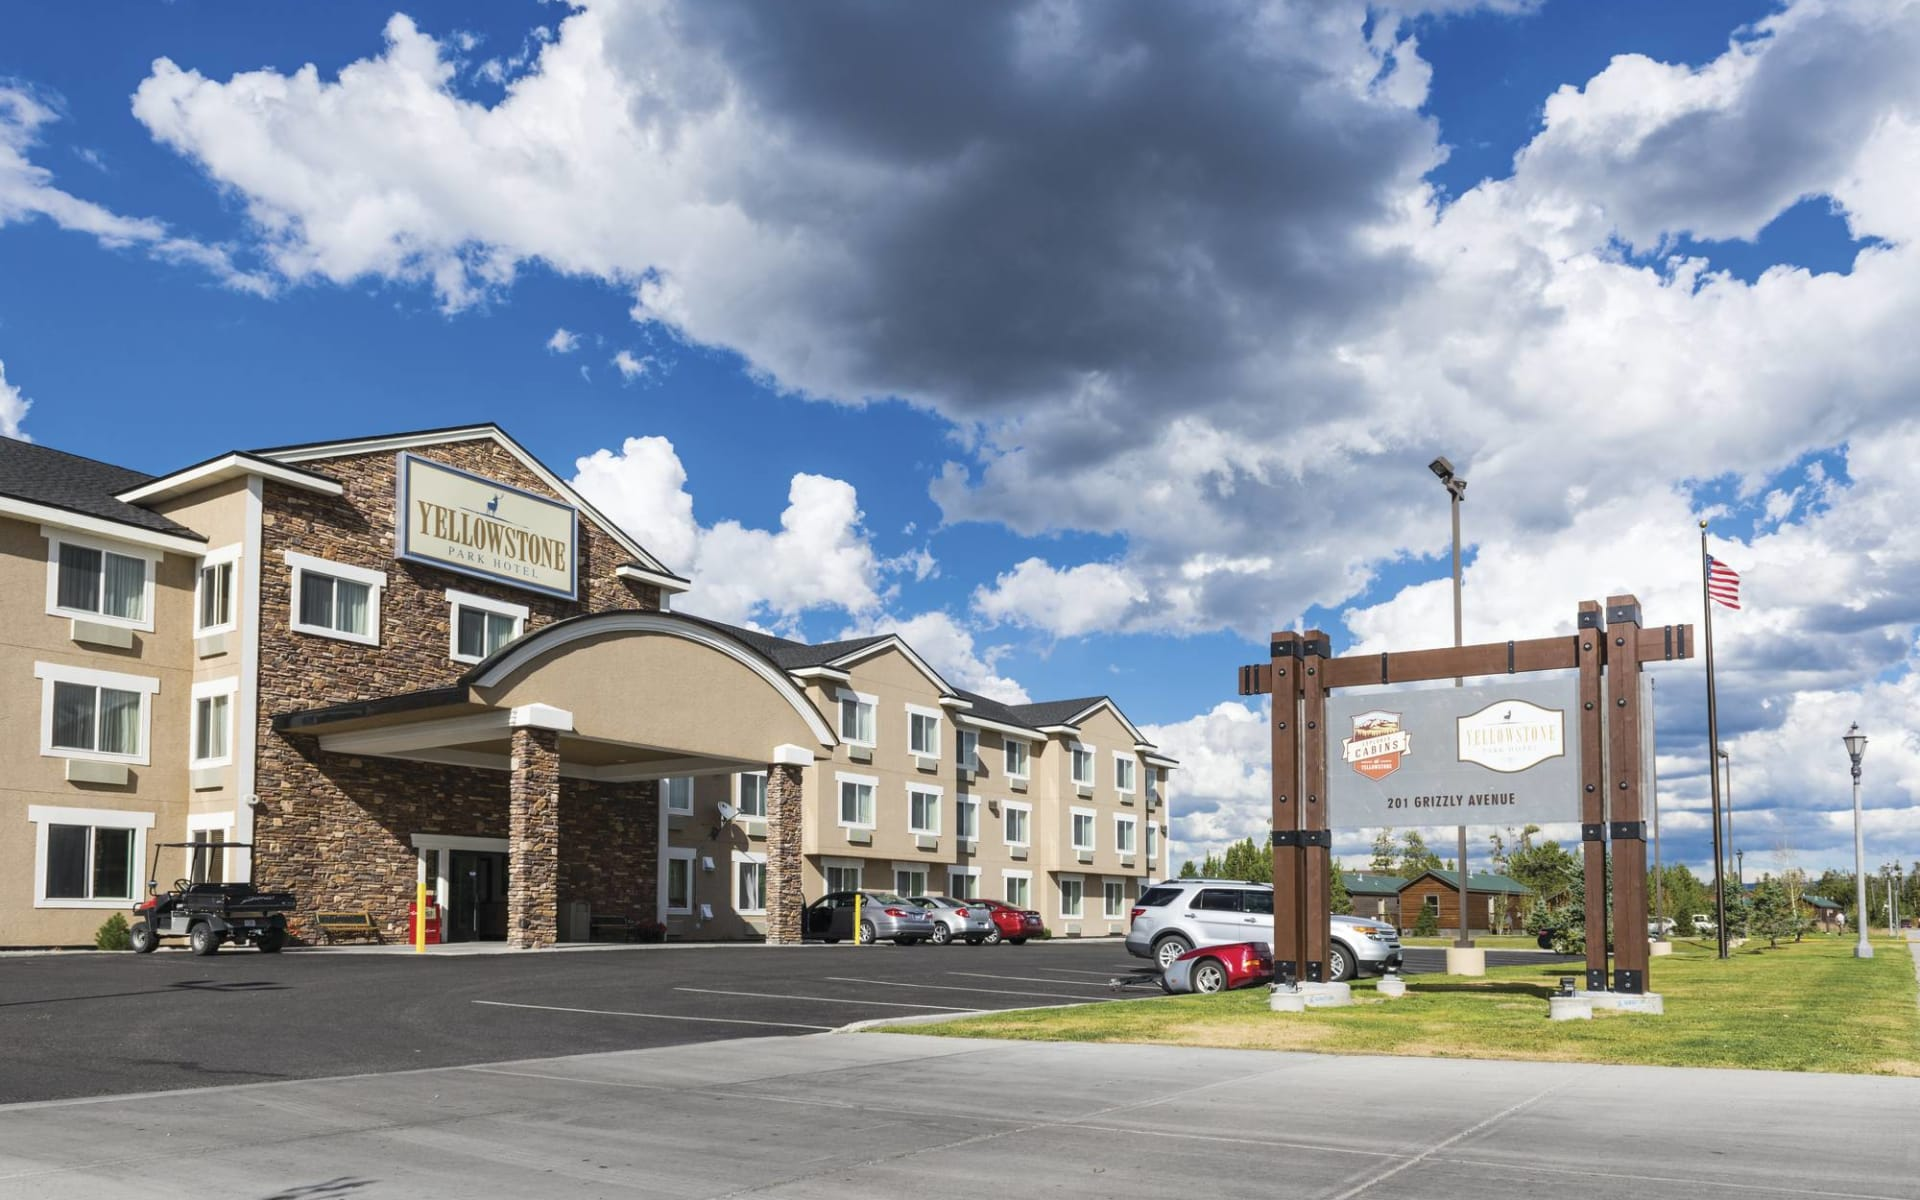 Yellowstone Park Hotel in West Yellowstone: Exterior_Yellowstone Park Hotel_Aussenansicht